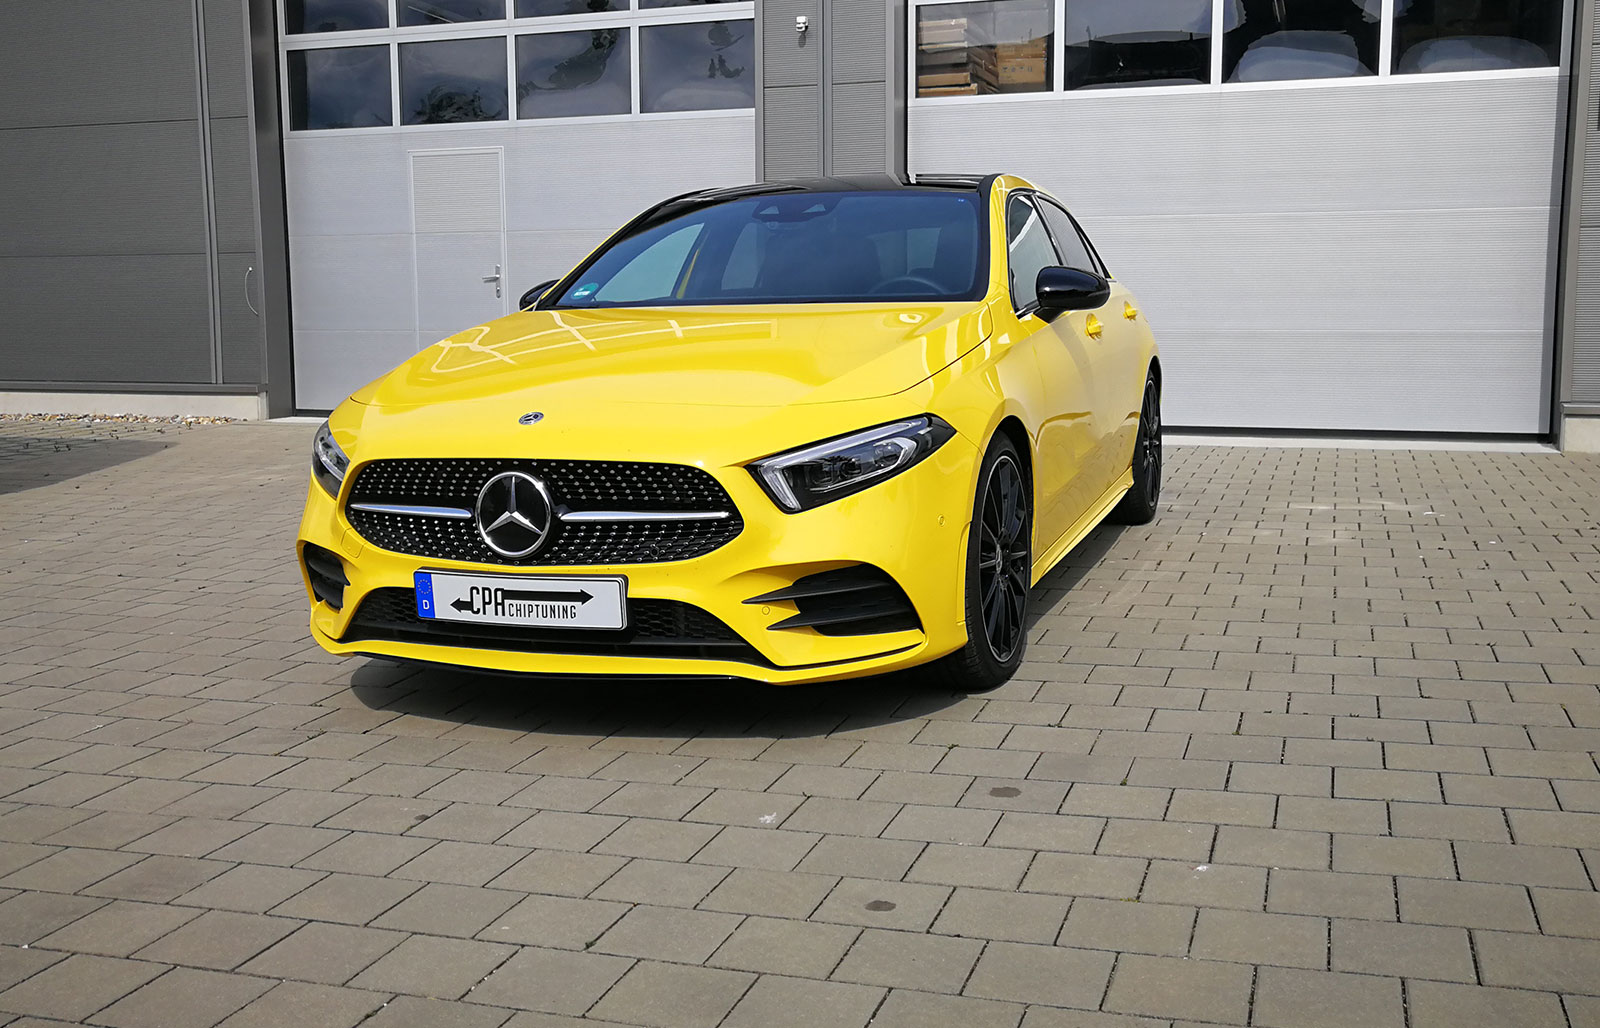 The new entry-level version at AMG, the A35 AMG